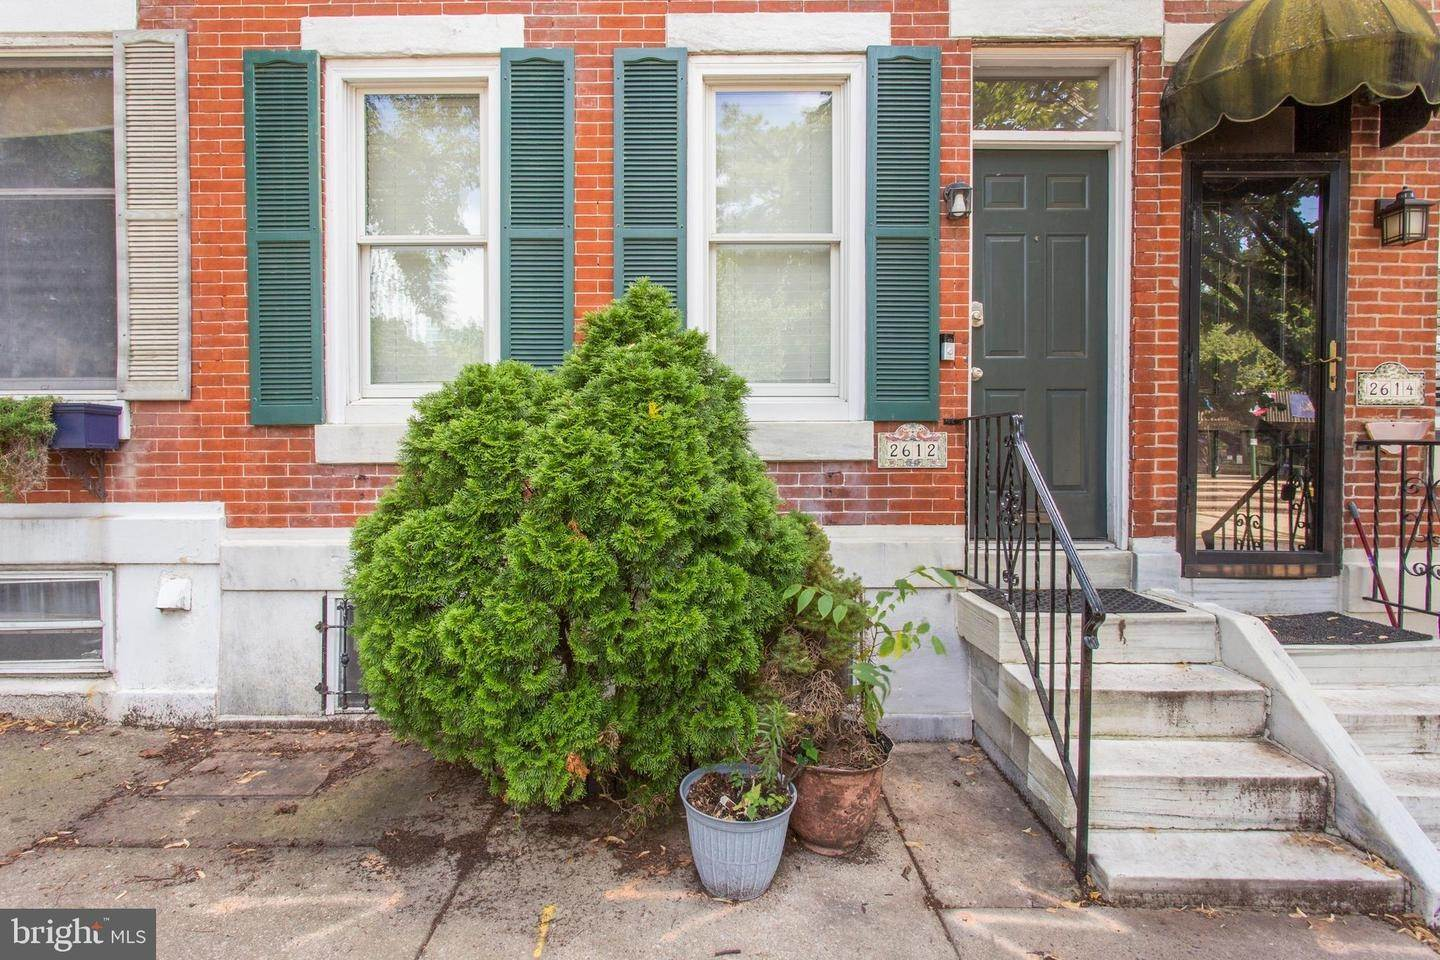 Property at 2612 PINE STREET Philadelphia, Pennsylvania 19103 United States